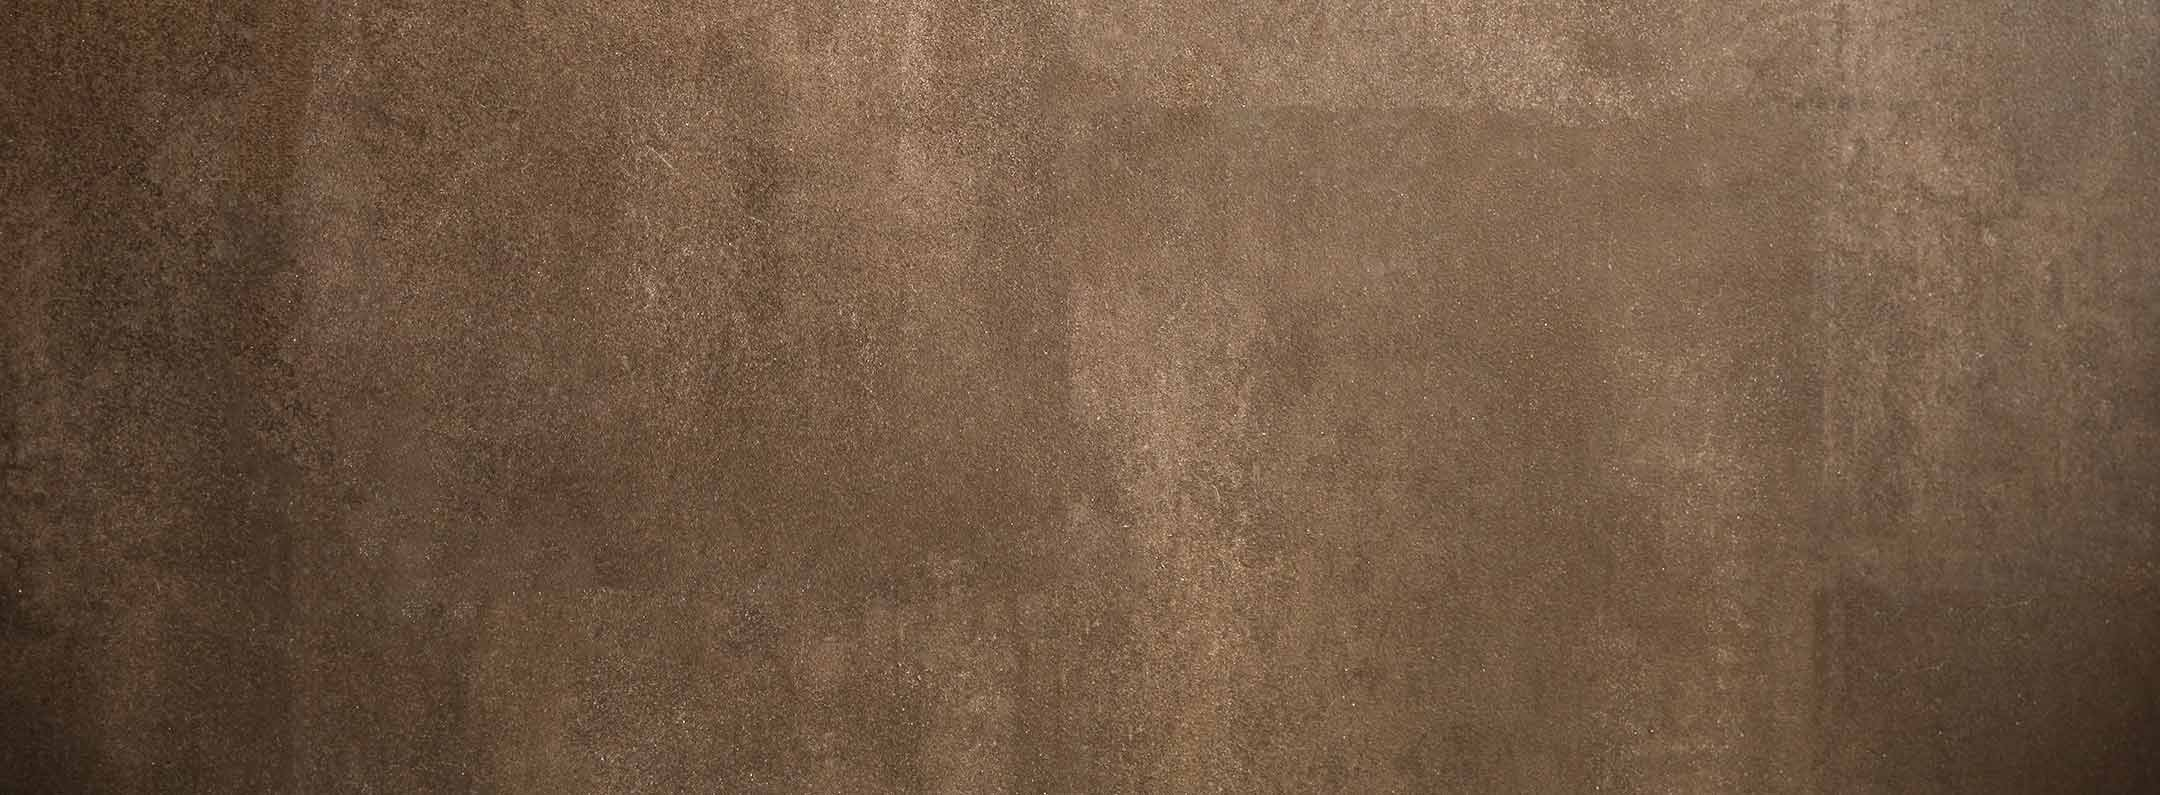 Cement Wall Paper